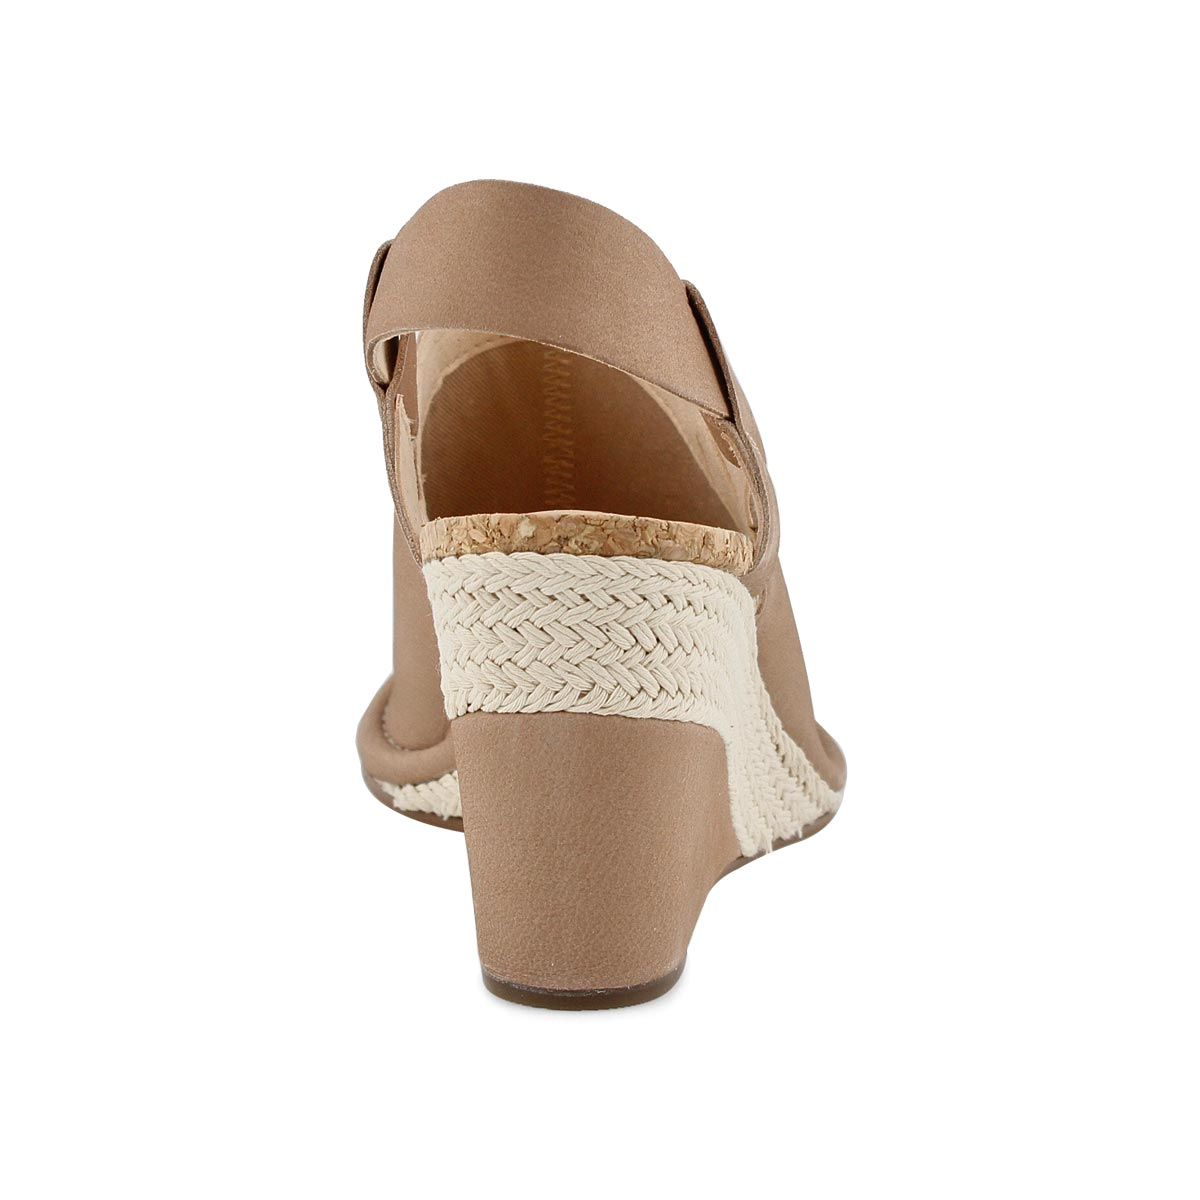 Lds Spiced Bay nude dress wedge sandal